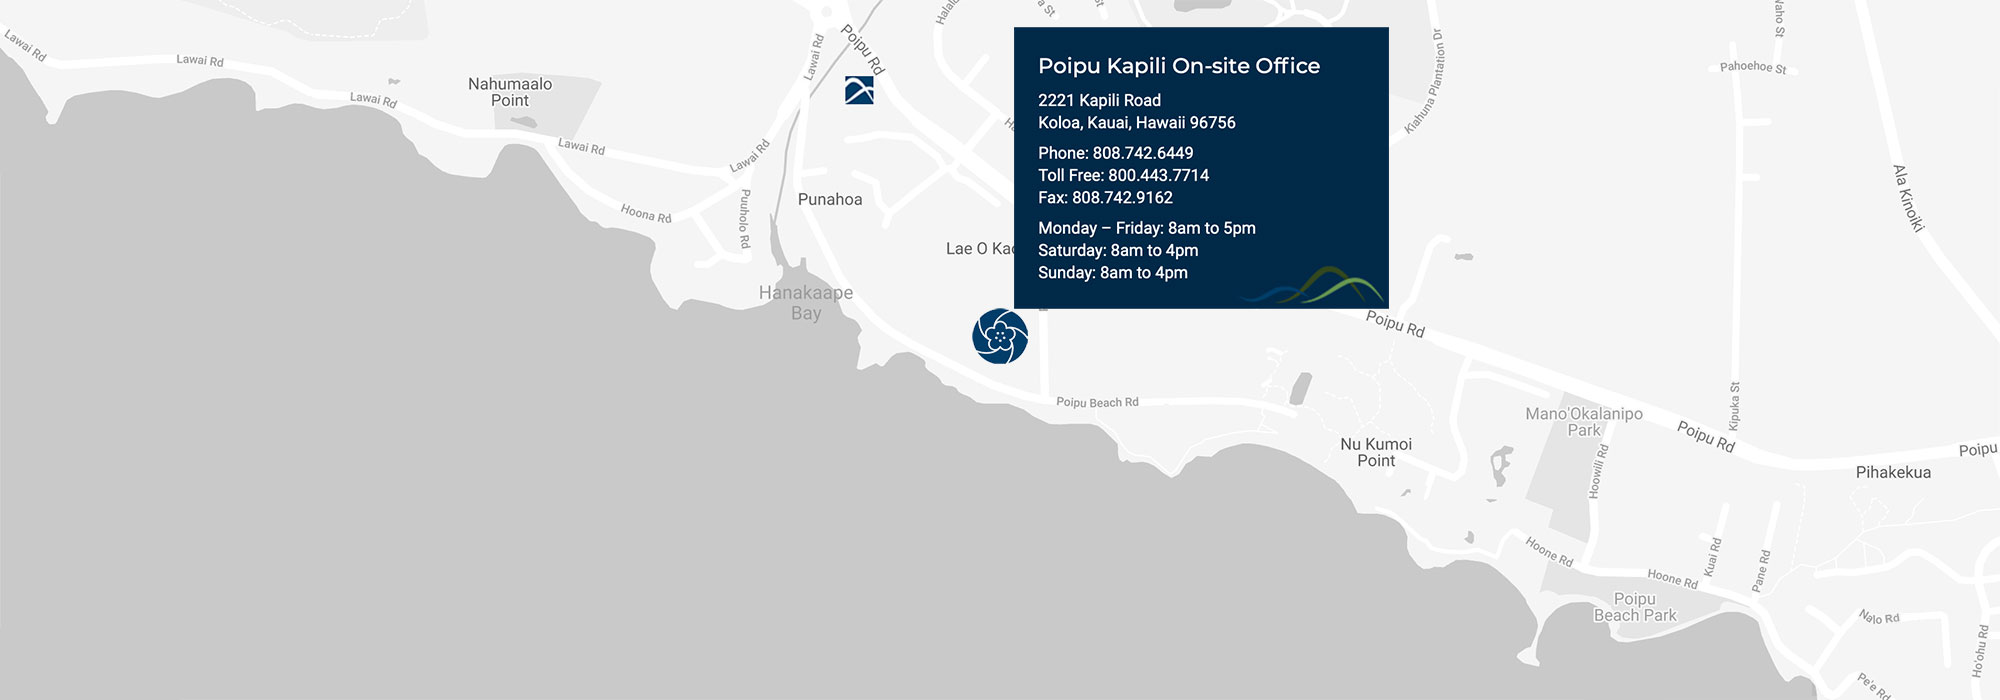 Poipu Kapili office location